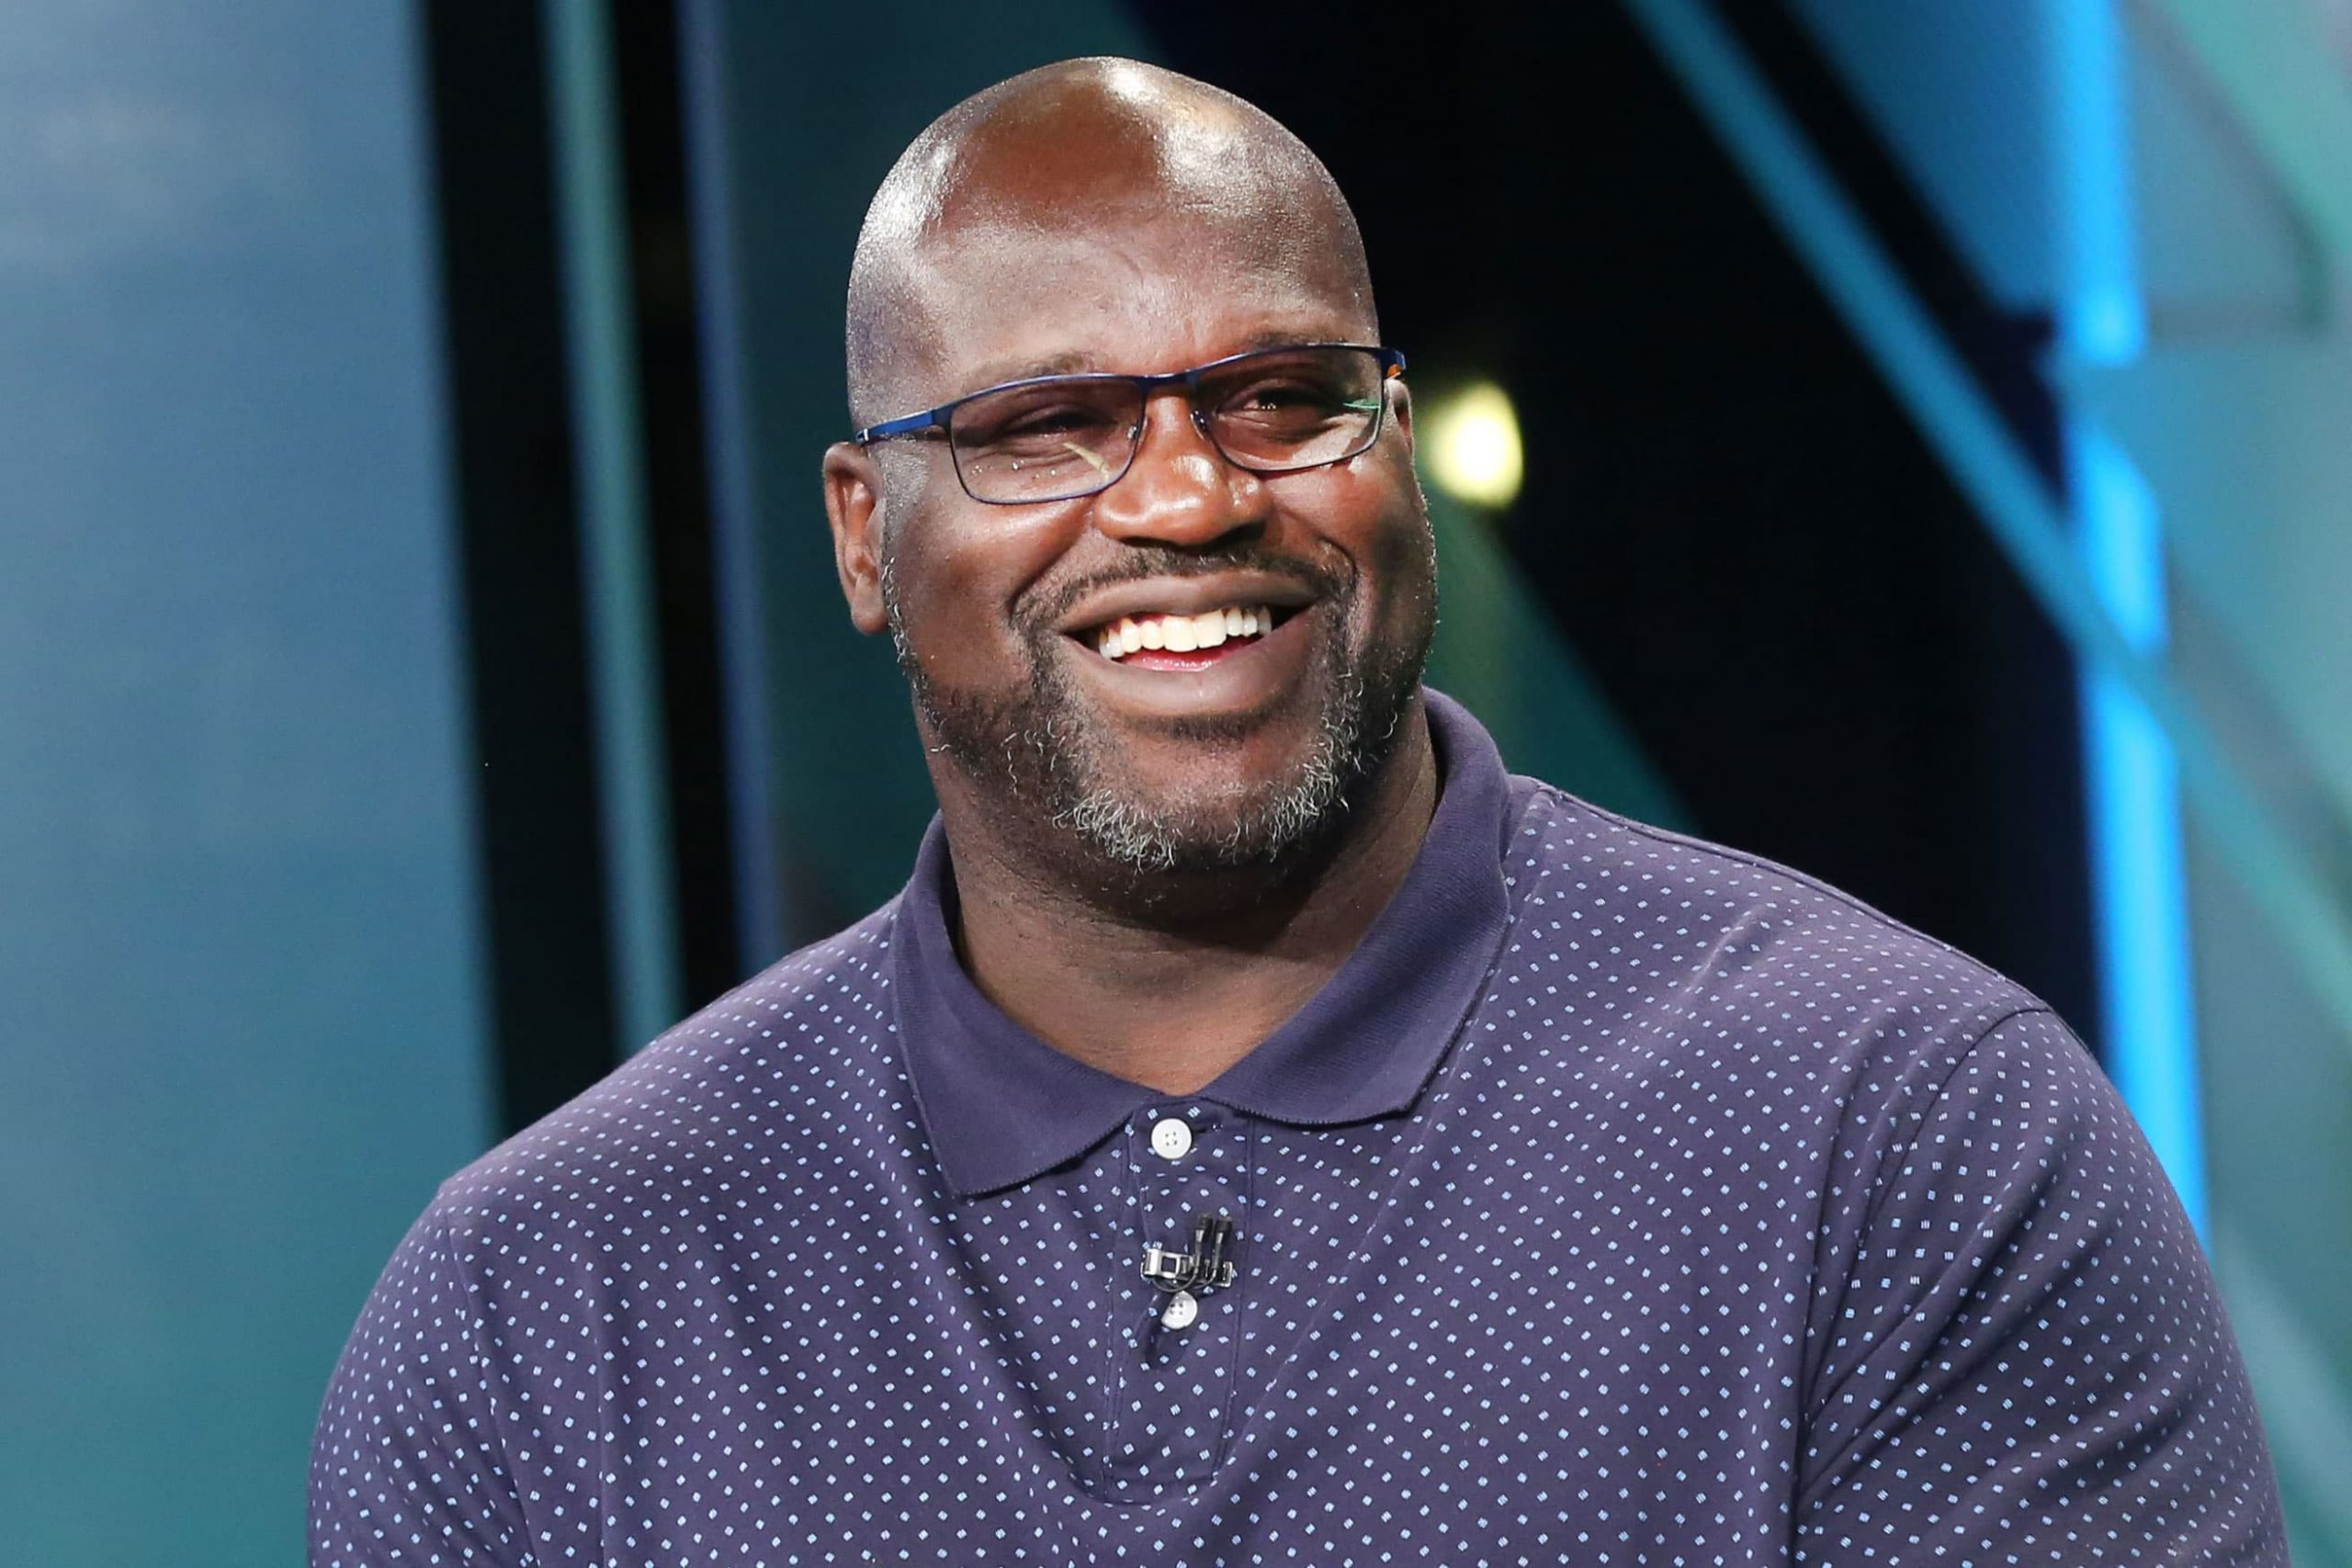 Shaq shoots down LeBron's comments about why so many NBA players were injured this year